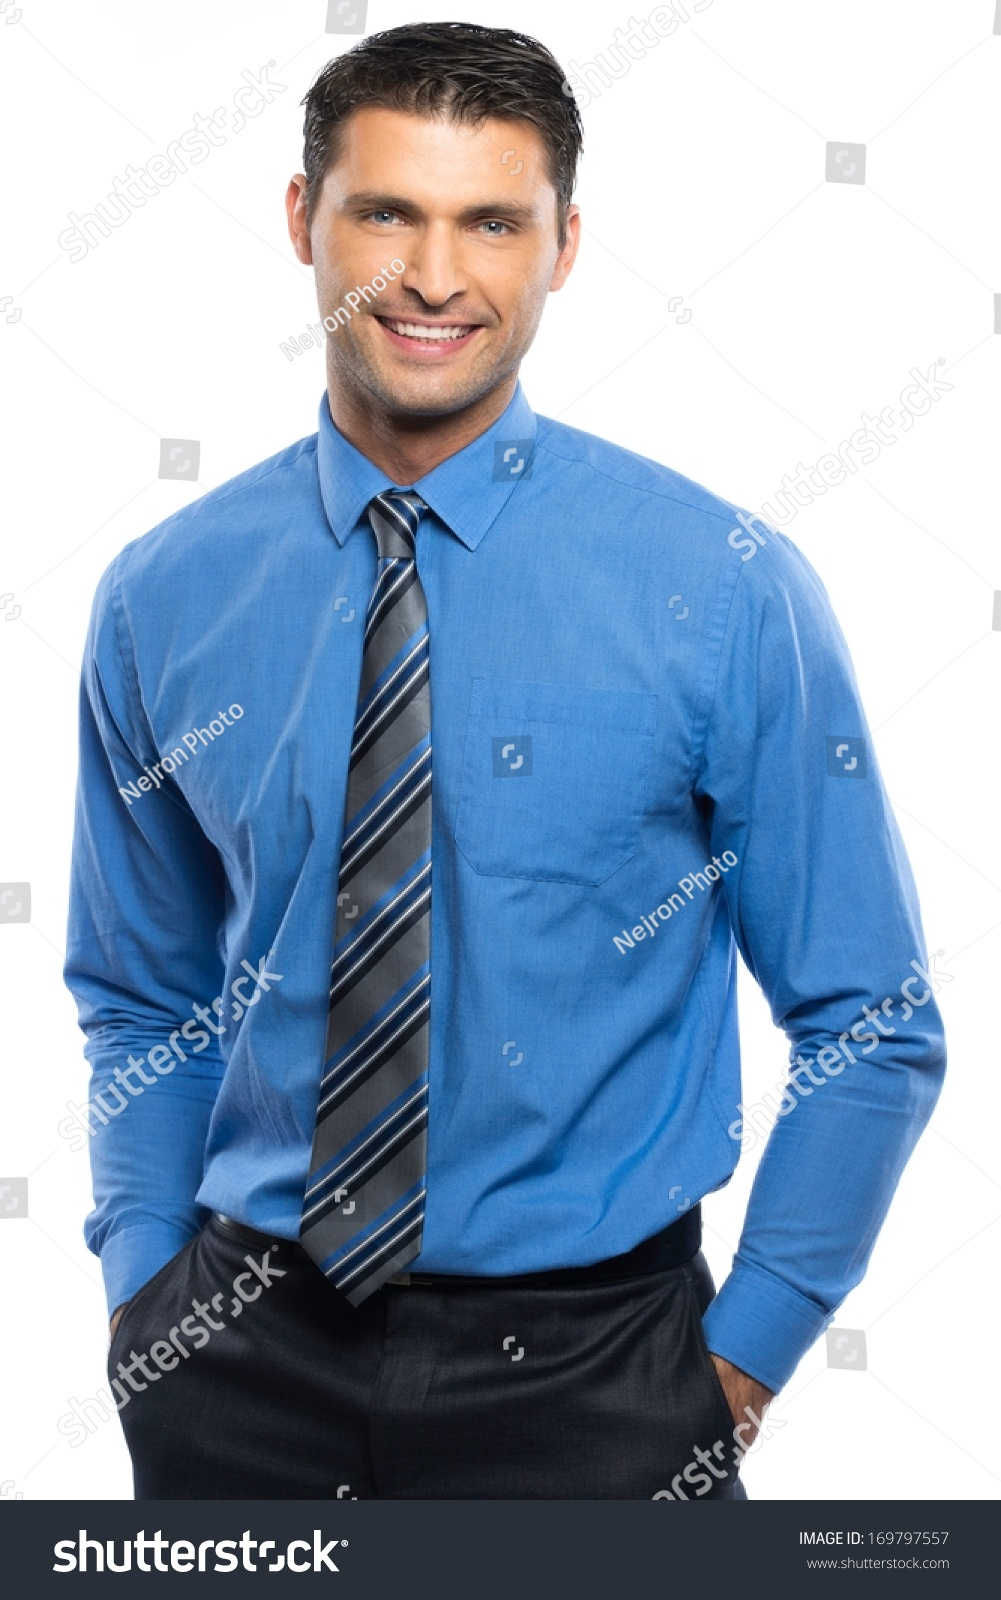 dbf4fdb08986ba Ties To Wear With Blue Shirt White Collar – EDGE Engineering and ...